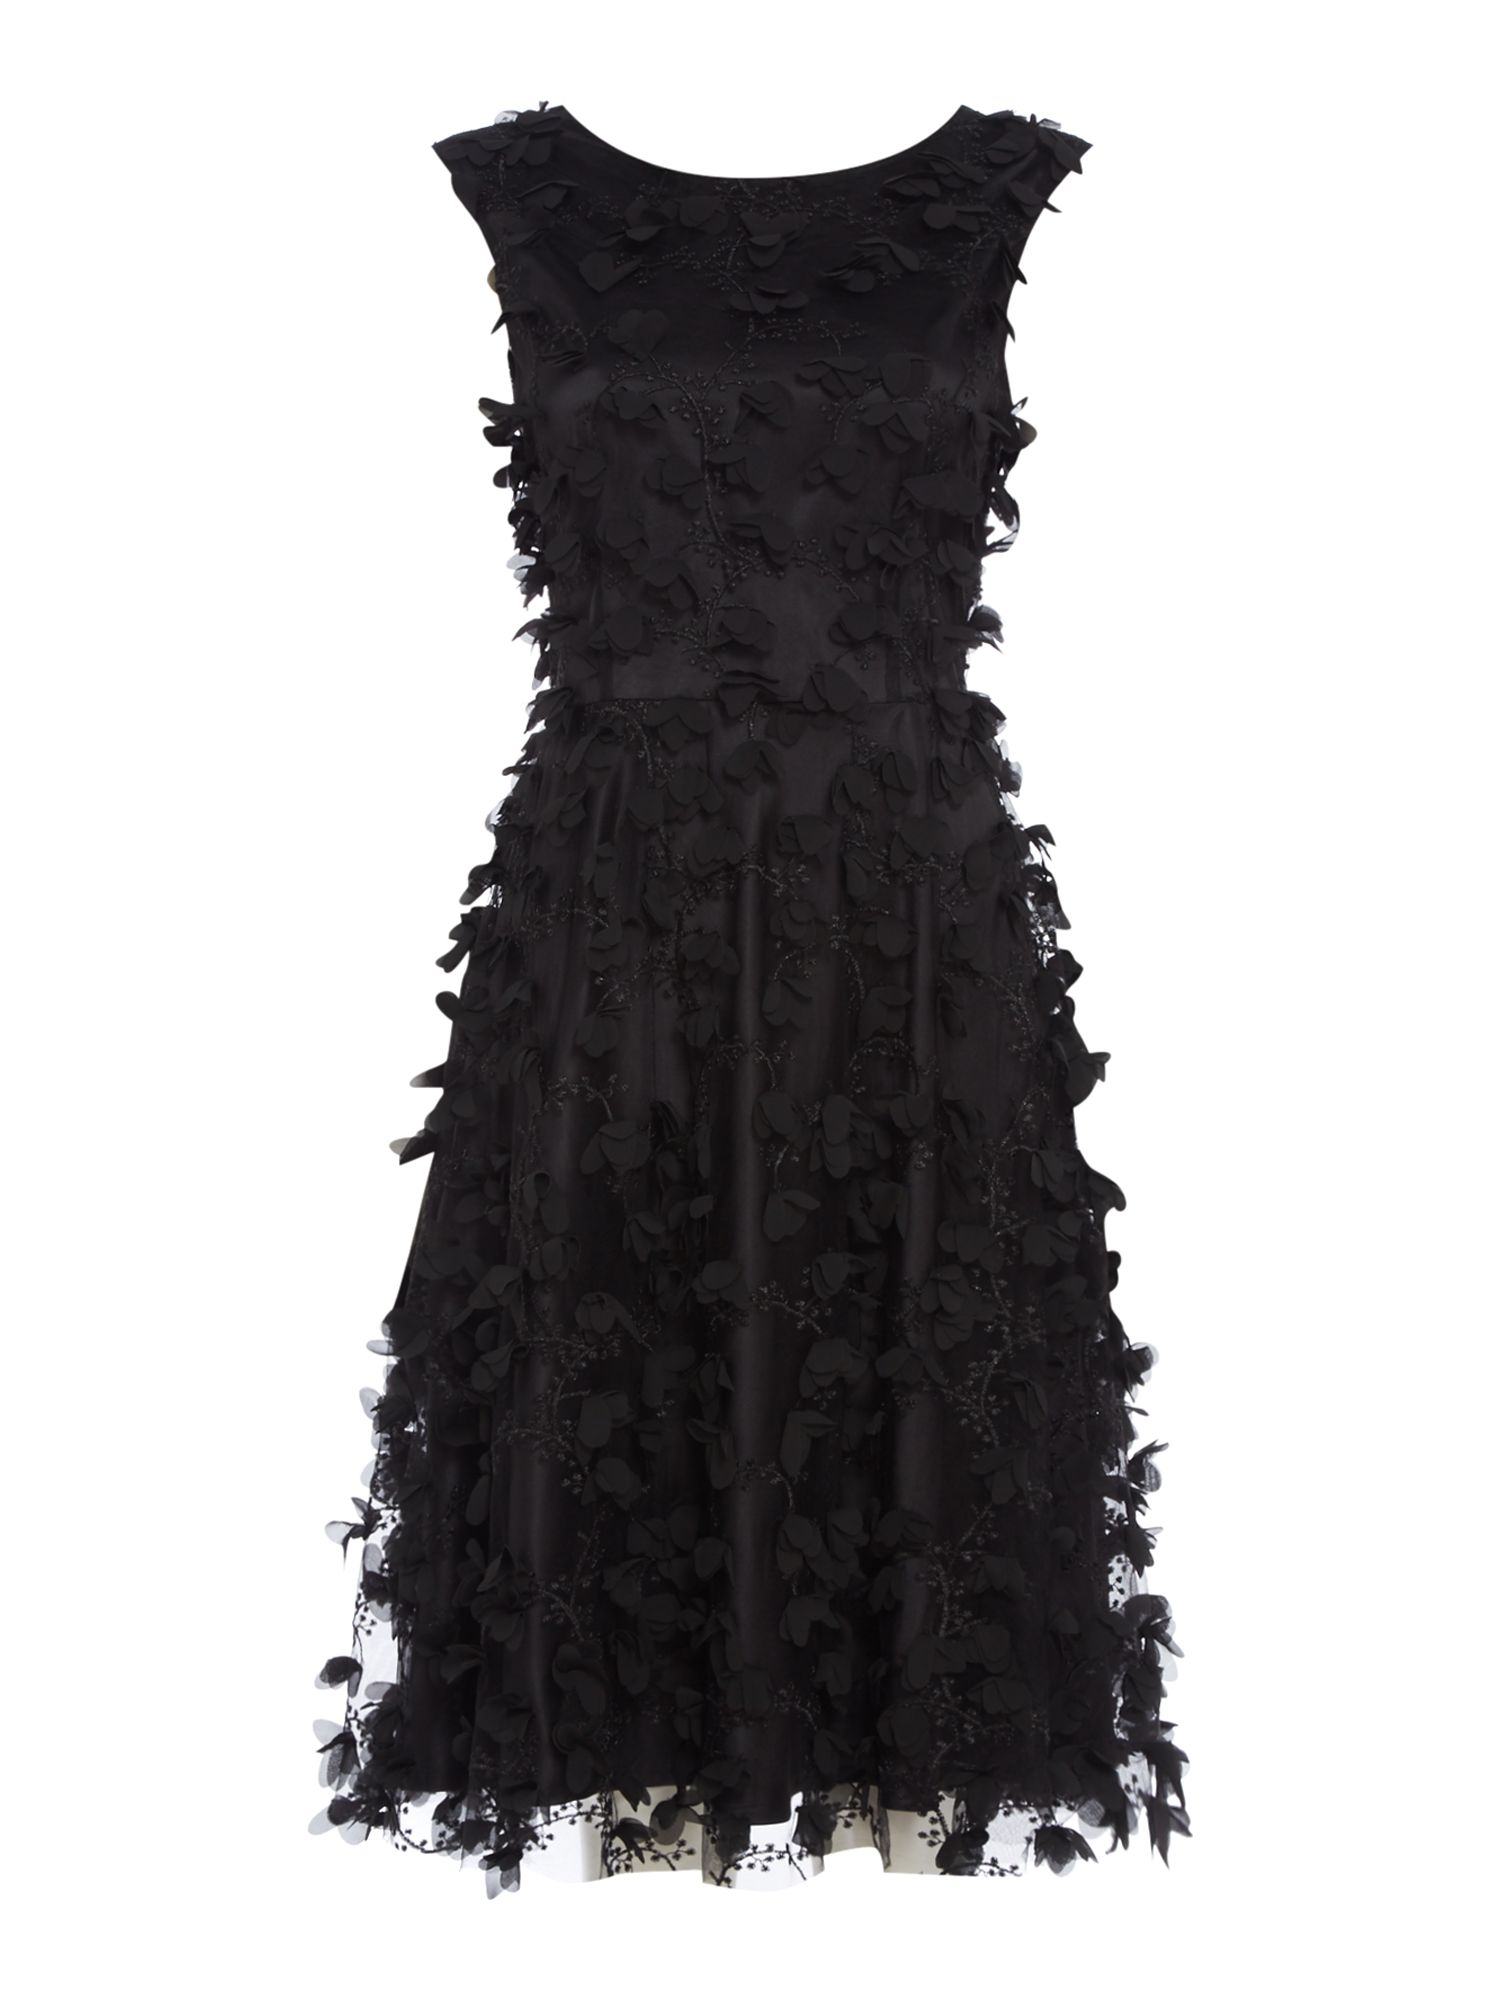 Tahari ASL Occasion Dress With Floral Texturized Details, Black